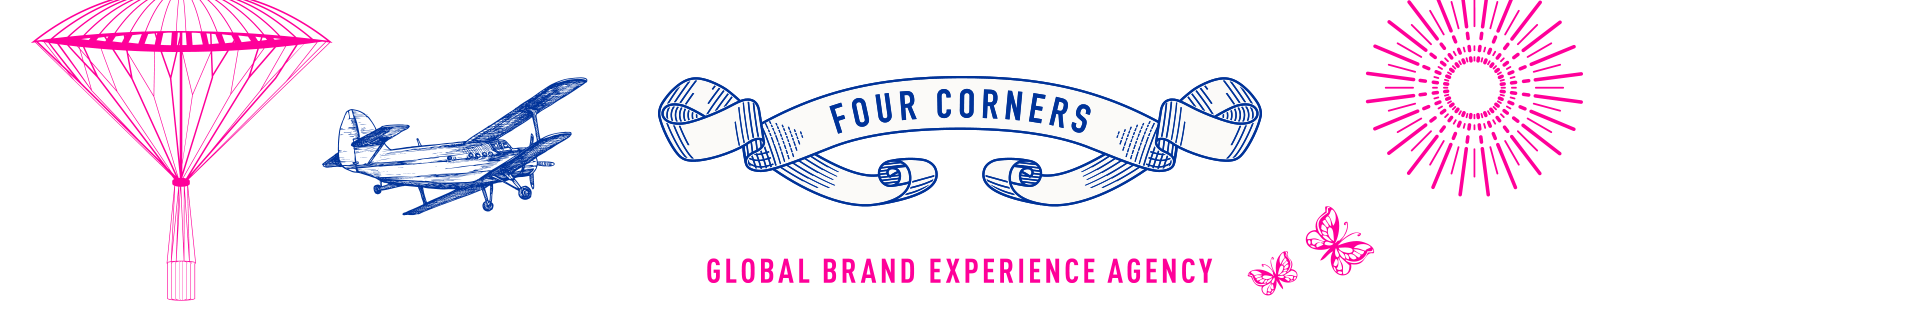 Four Corners - Prize Promotions Around The World